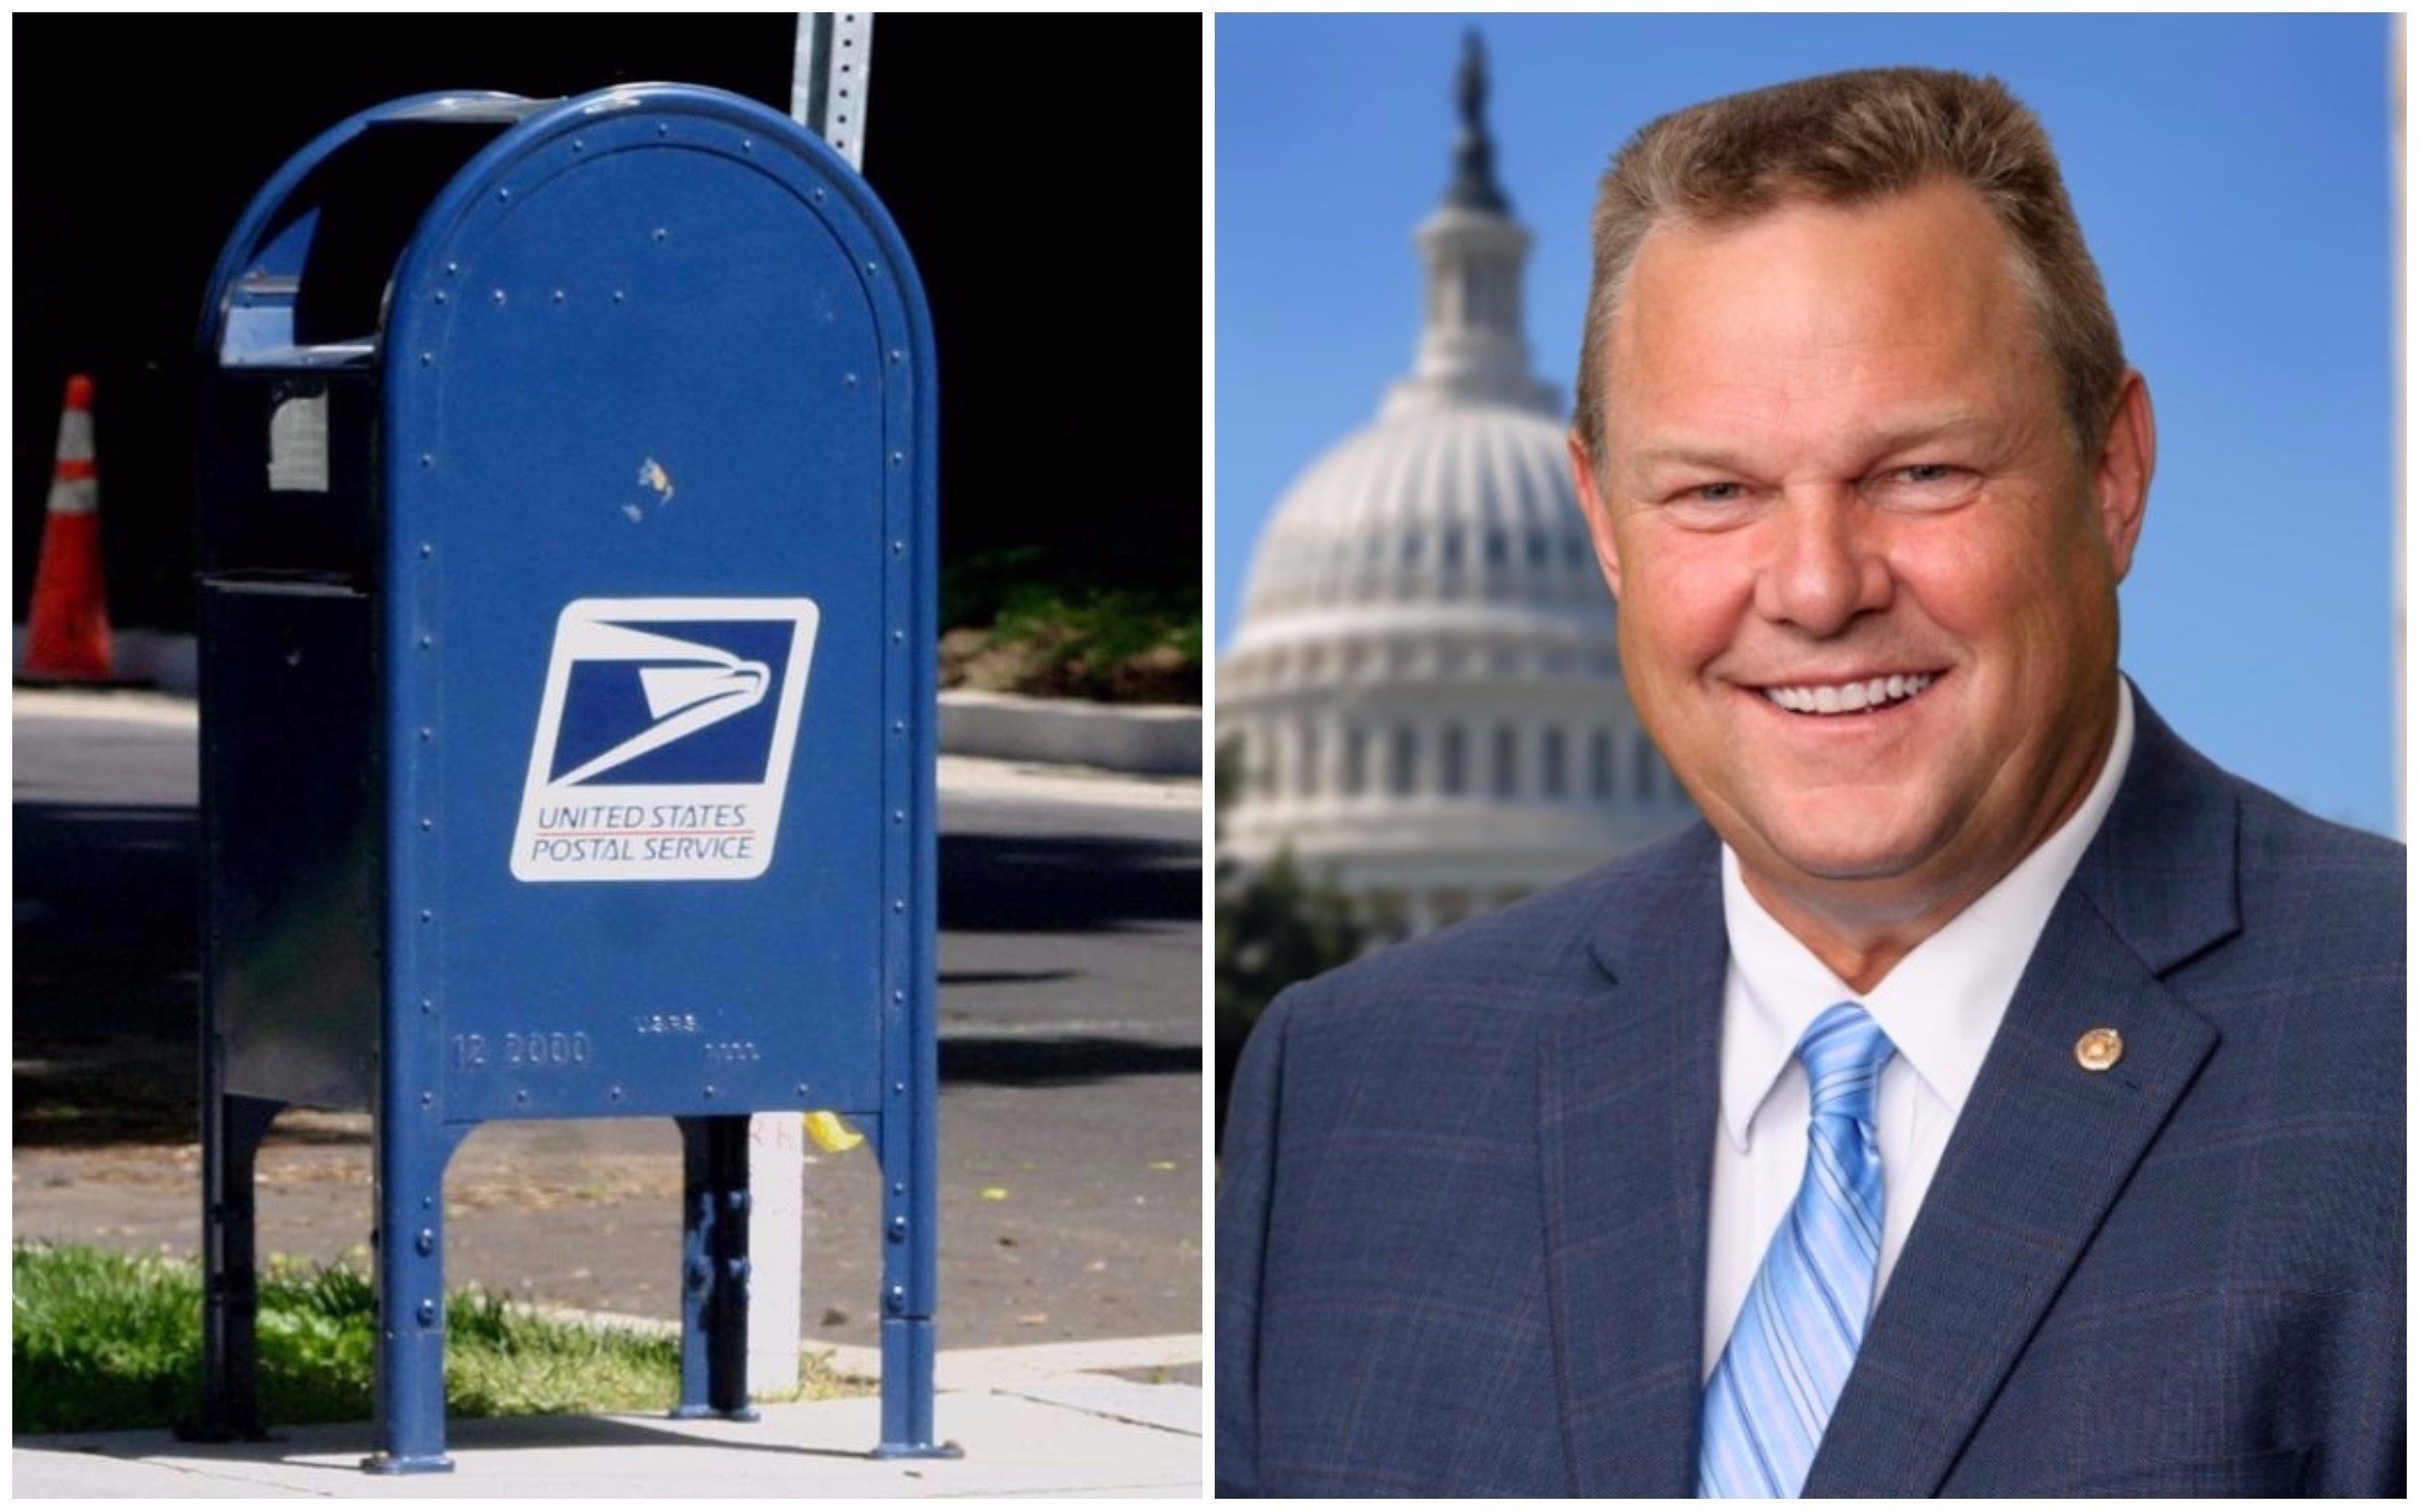 The Office of Inspector General revealed its findings on the U.S. Postal Service mail delivery delays earlier this week.